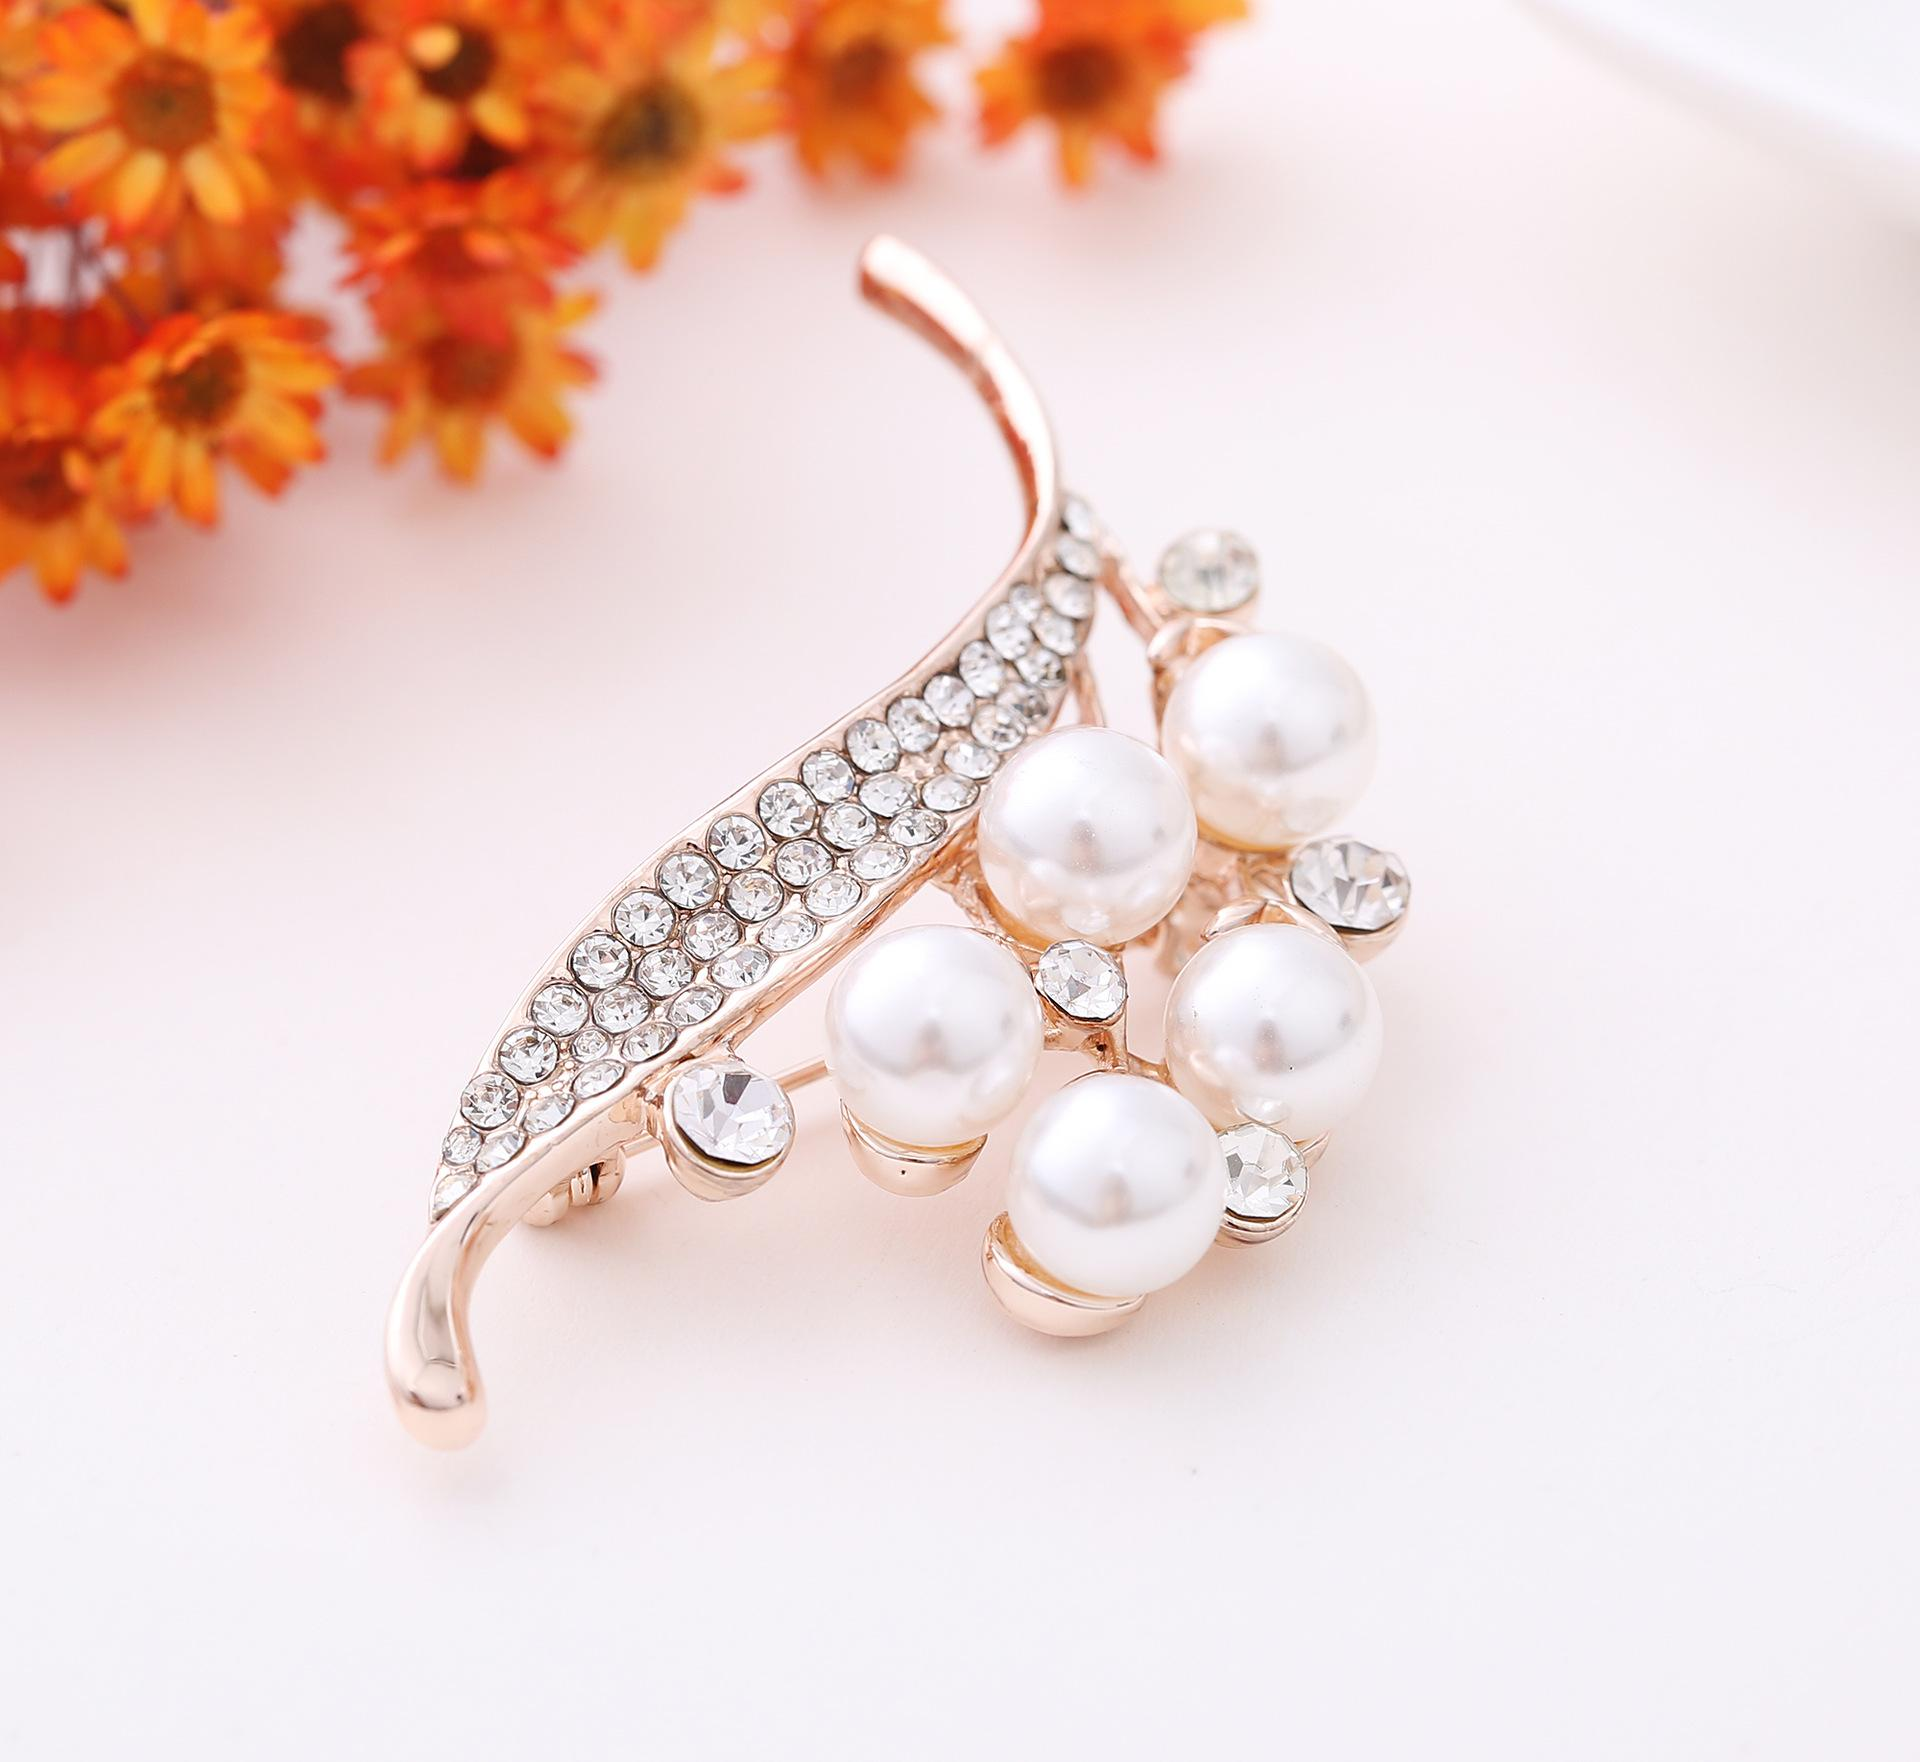 Tahitian Pearl Brooch for Woman Fashion High-end Flower Alloy Pin Crystal Pins Rhinestone Brooch for Dress Clothing Party Festival Gift